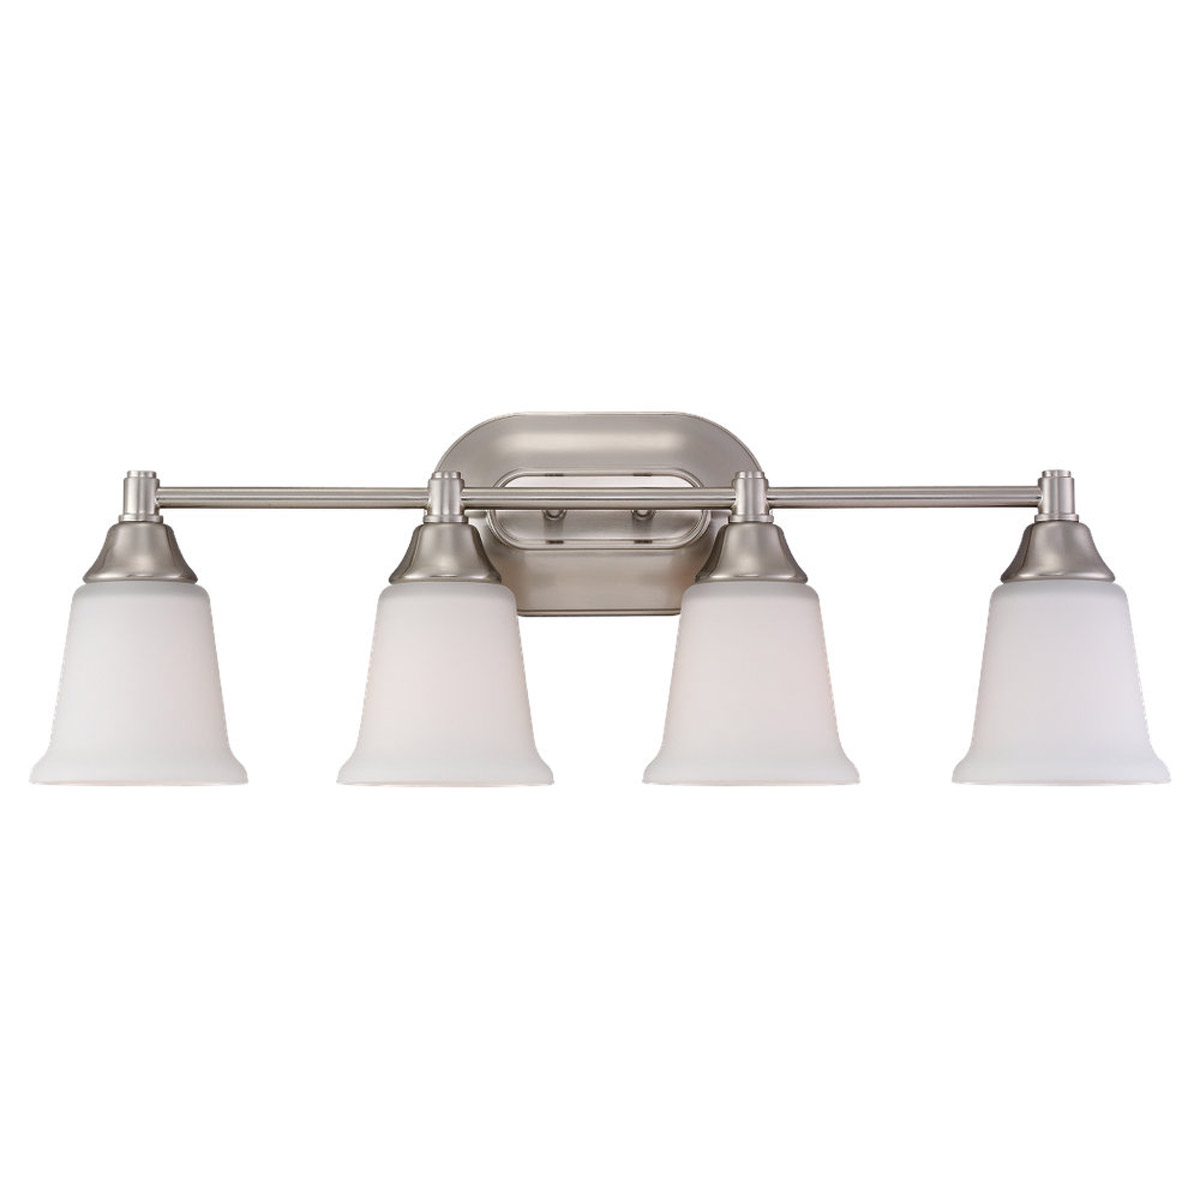 Sea Gull Lighting Belair 4 Light Wall / Bath / Vanity in Brushed Nickel 44793-962